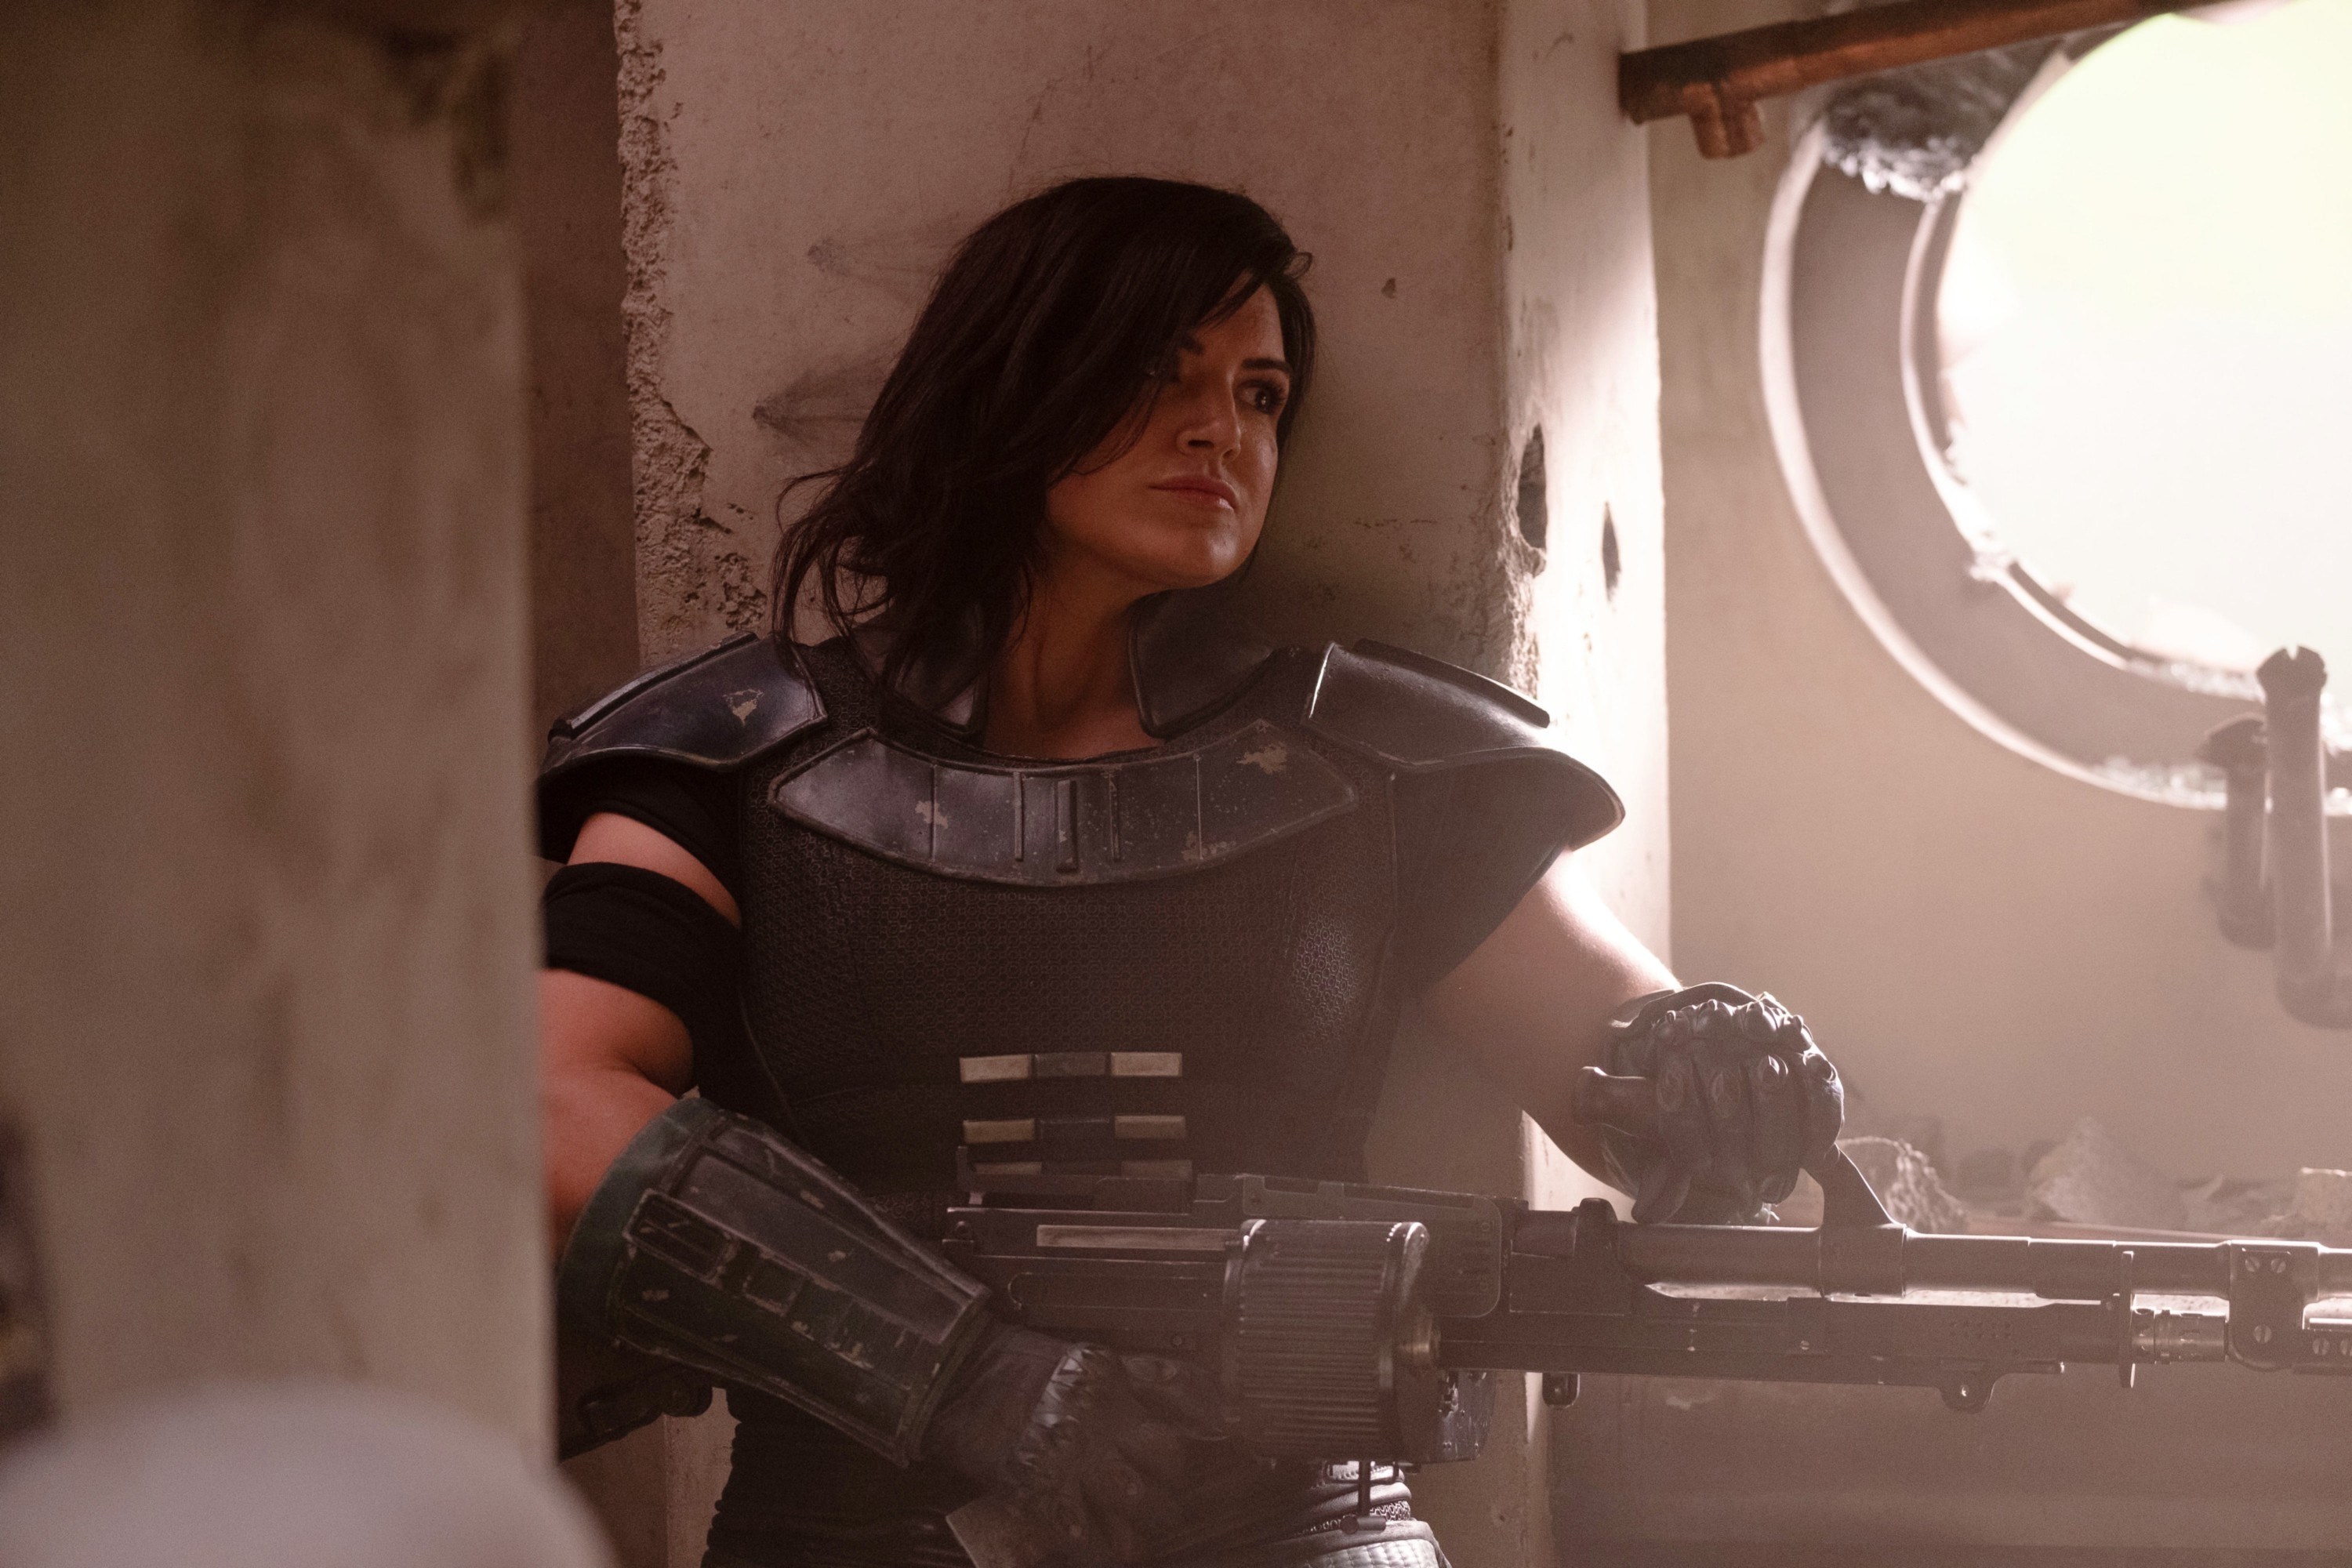 Gina Carano leans against a wall with a gun in The Mandalorian